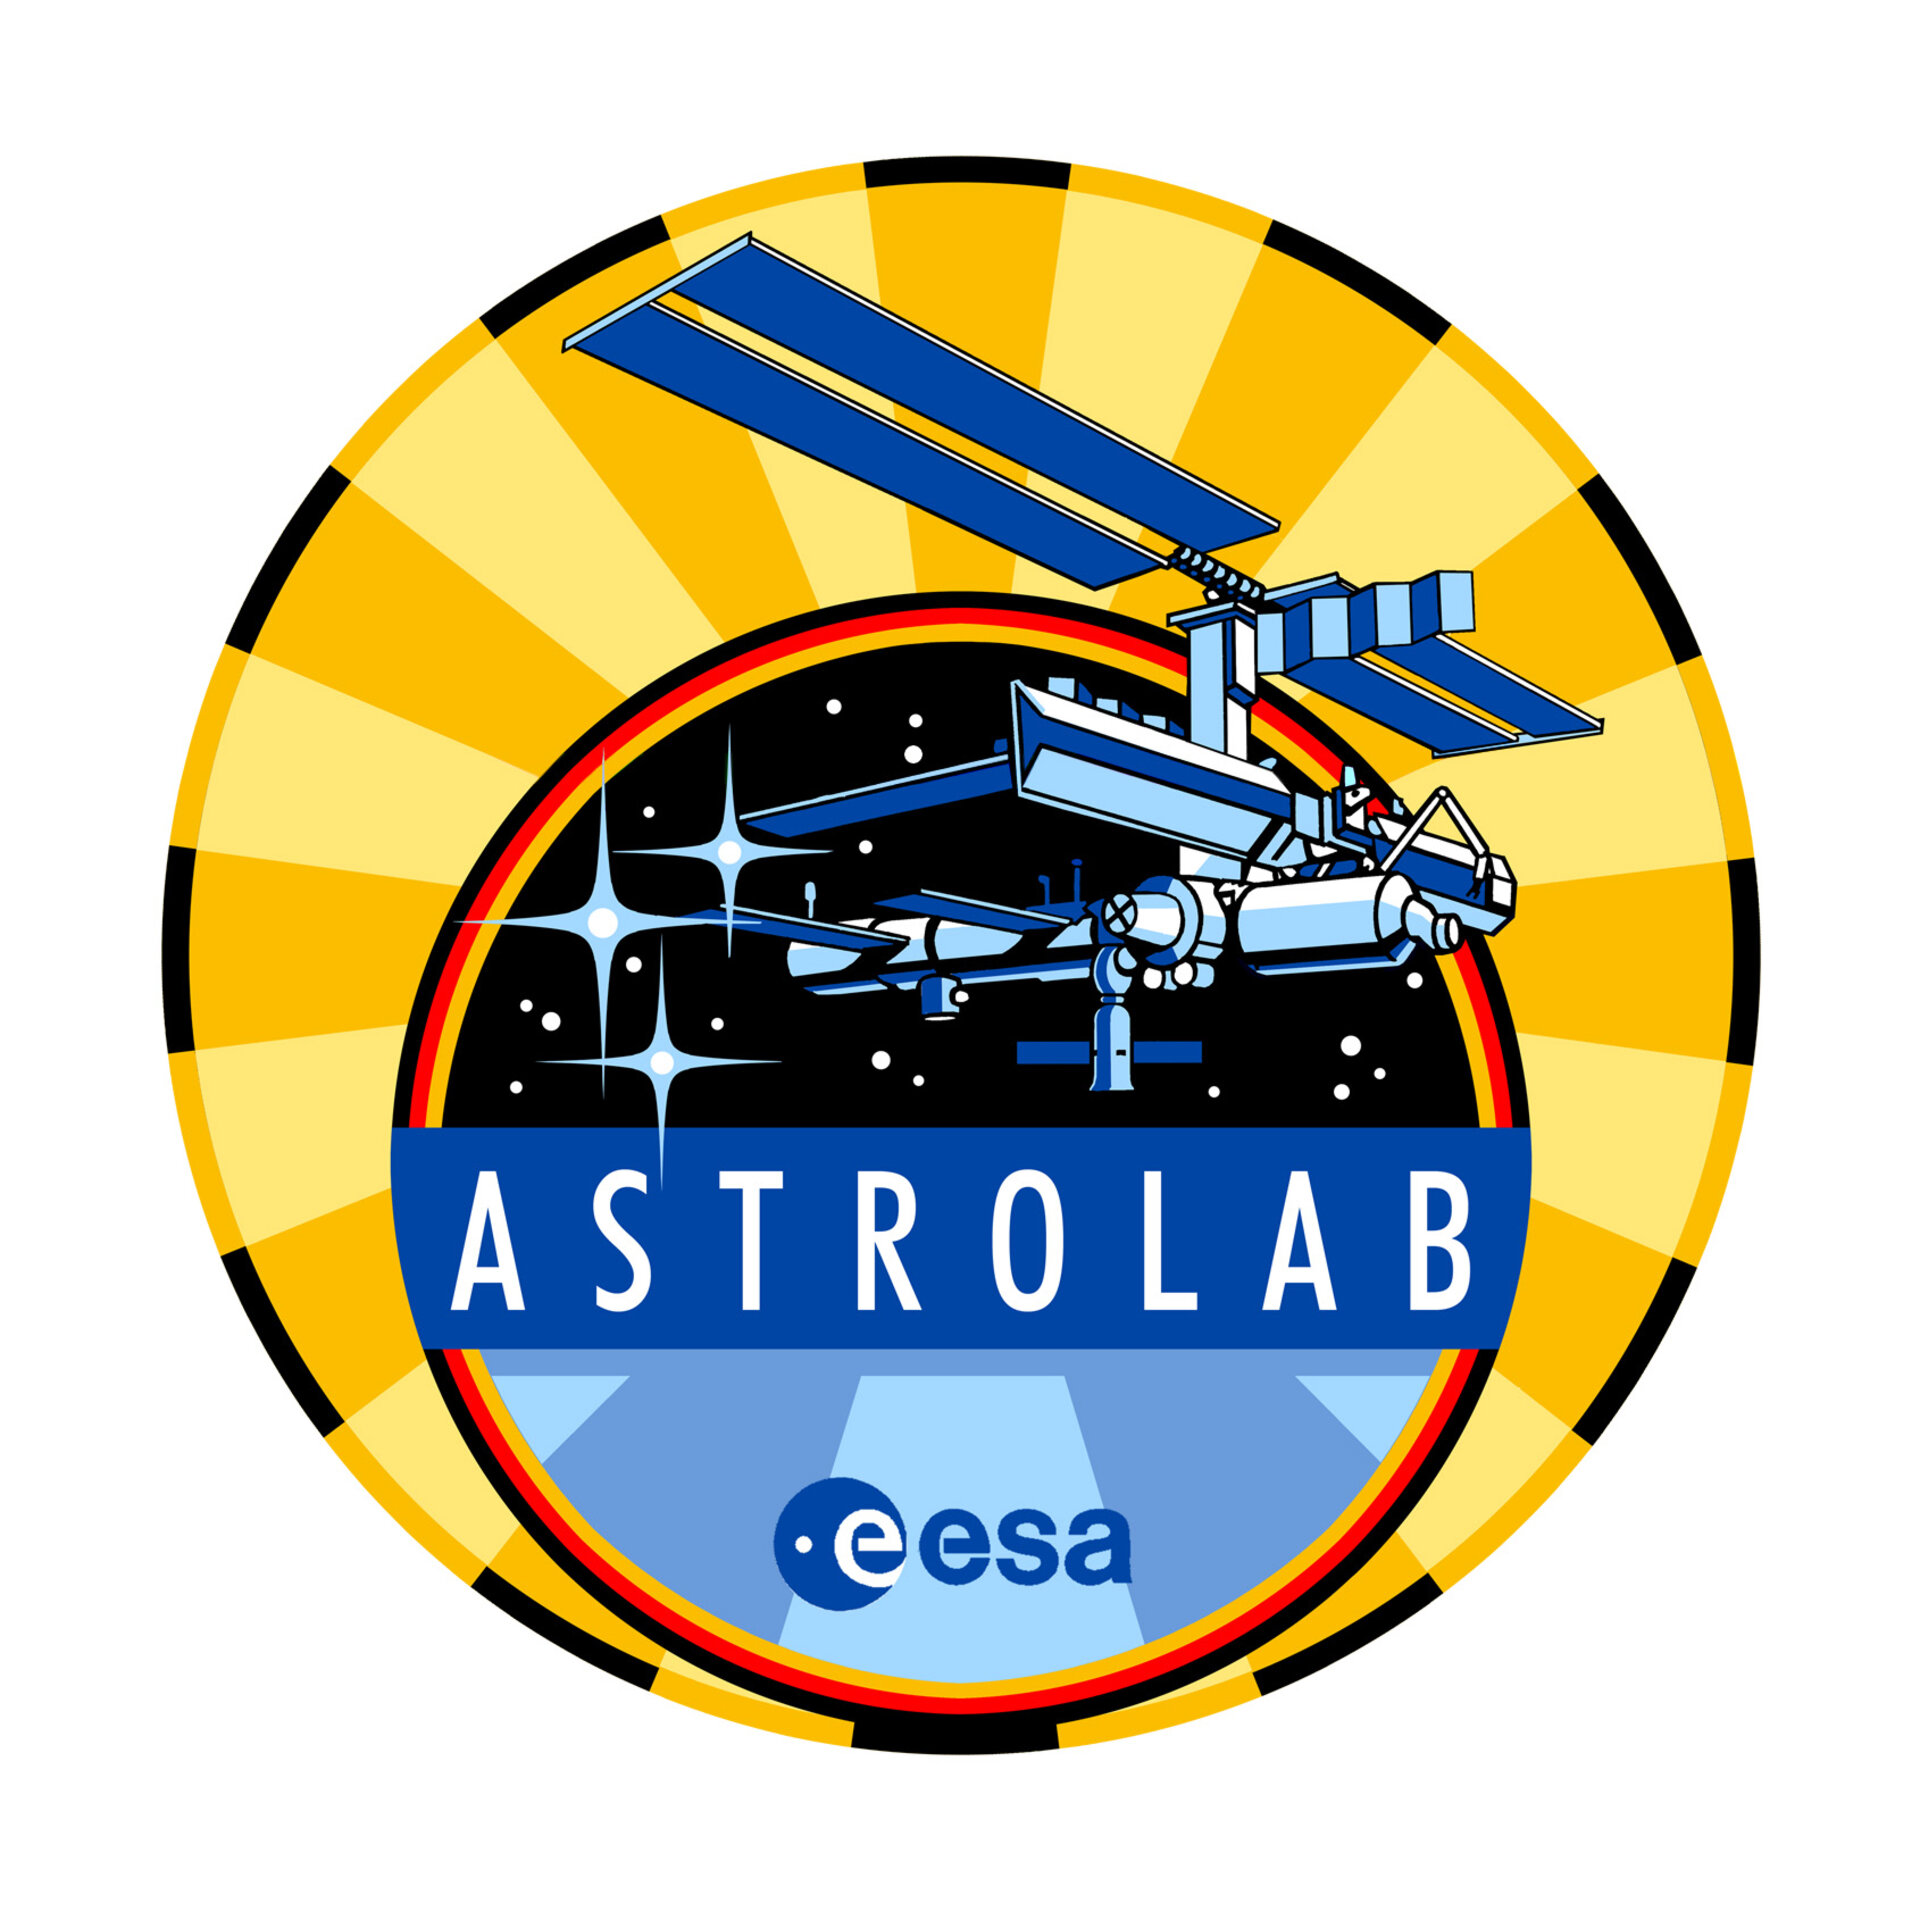 STS-121 Astrolab mission patch, 2006